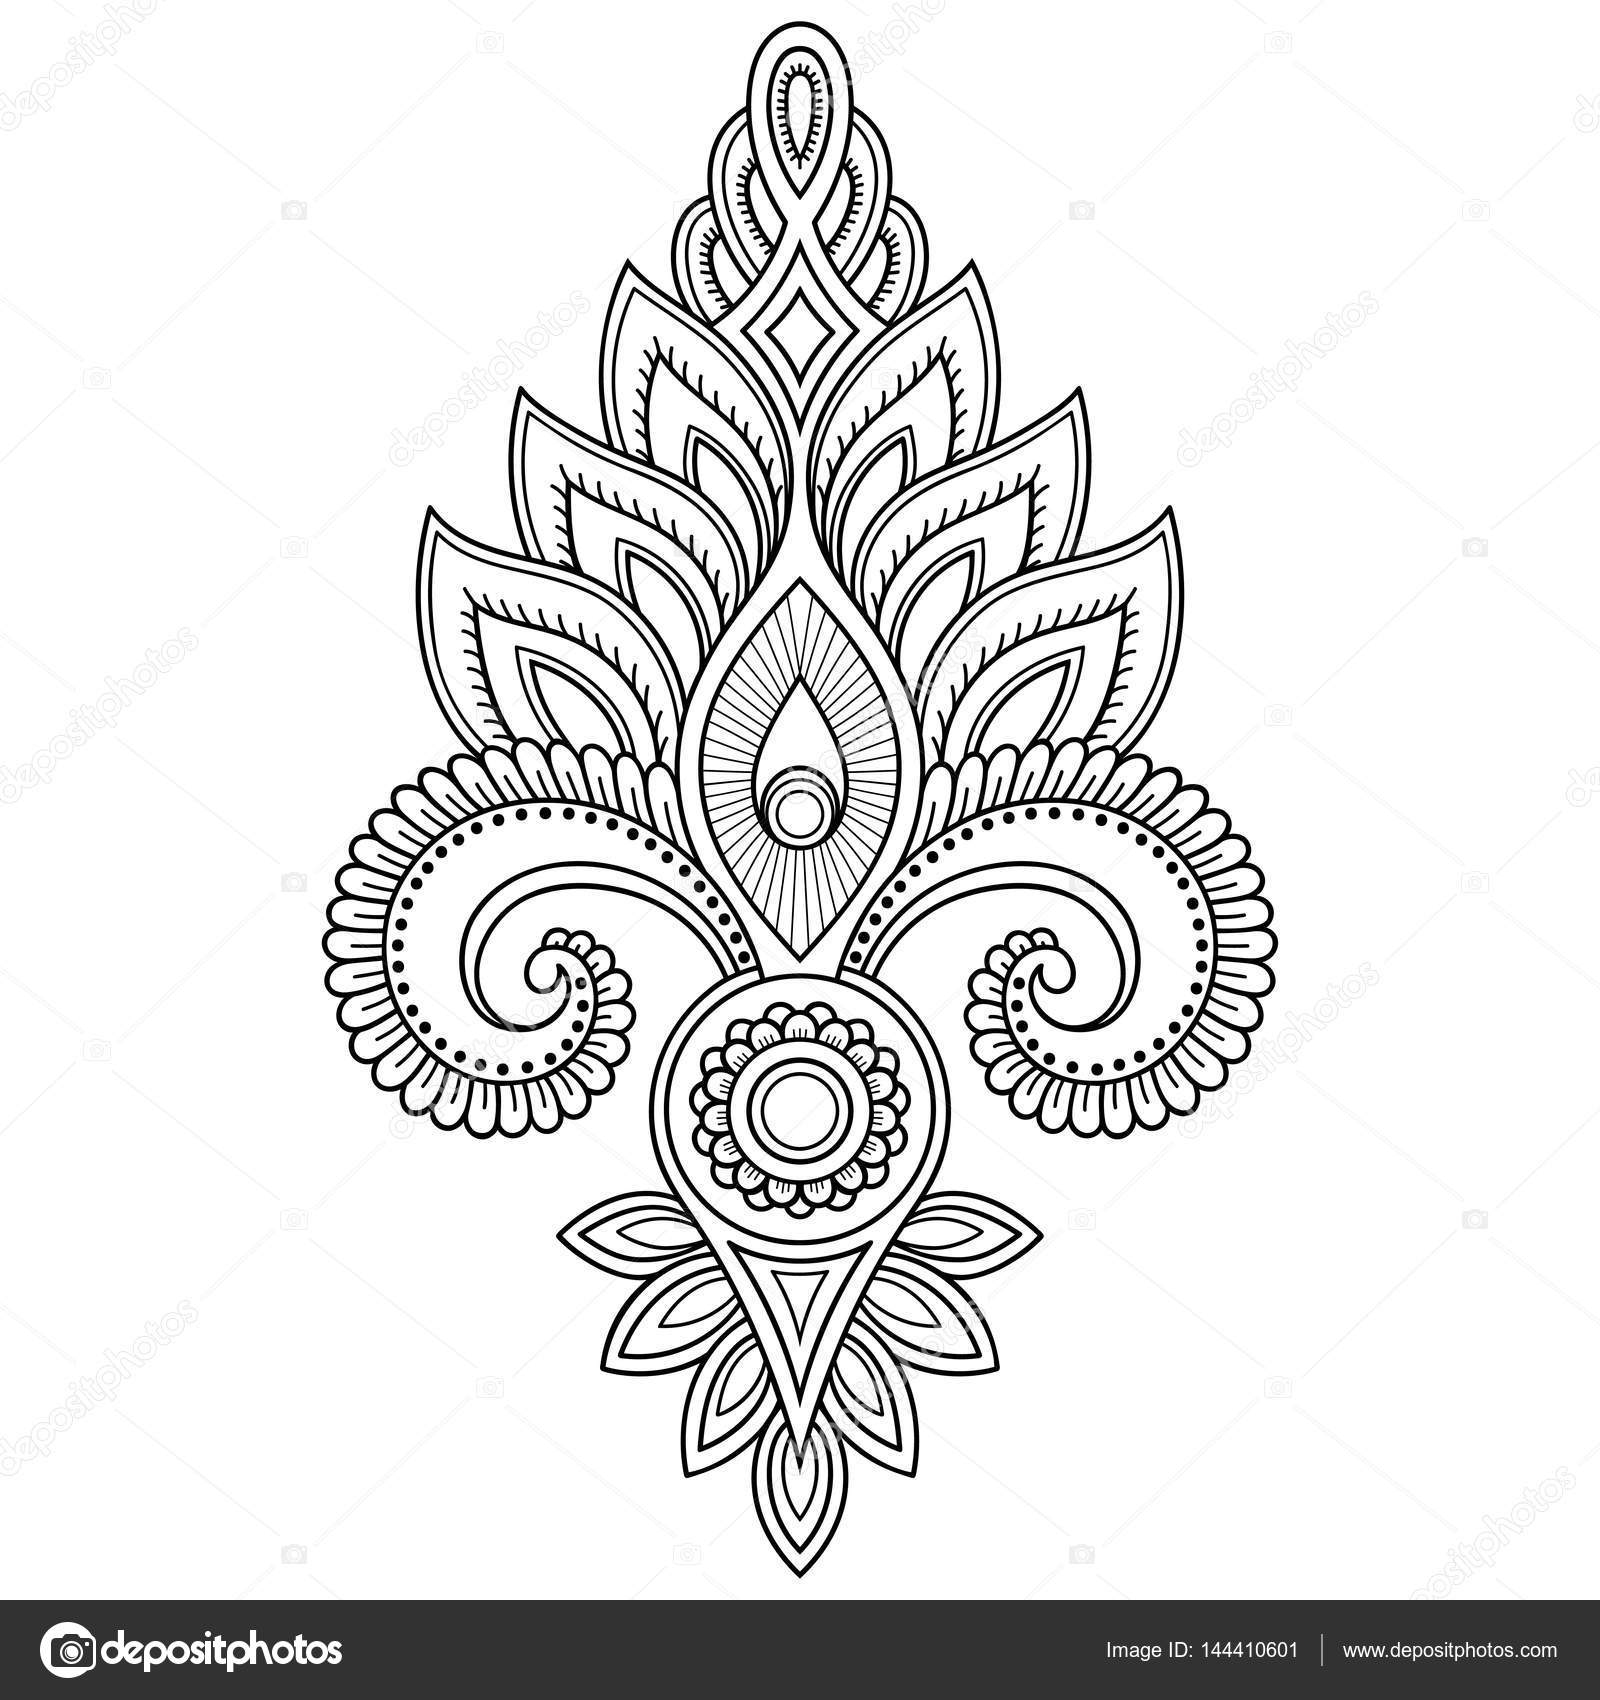 photo about Henna Templates Printable referred to as Henna tattoo printable stencils Henna tattoo flower